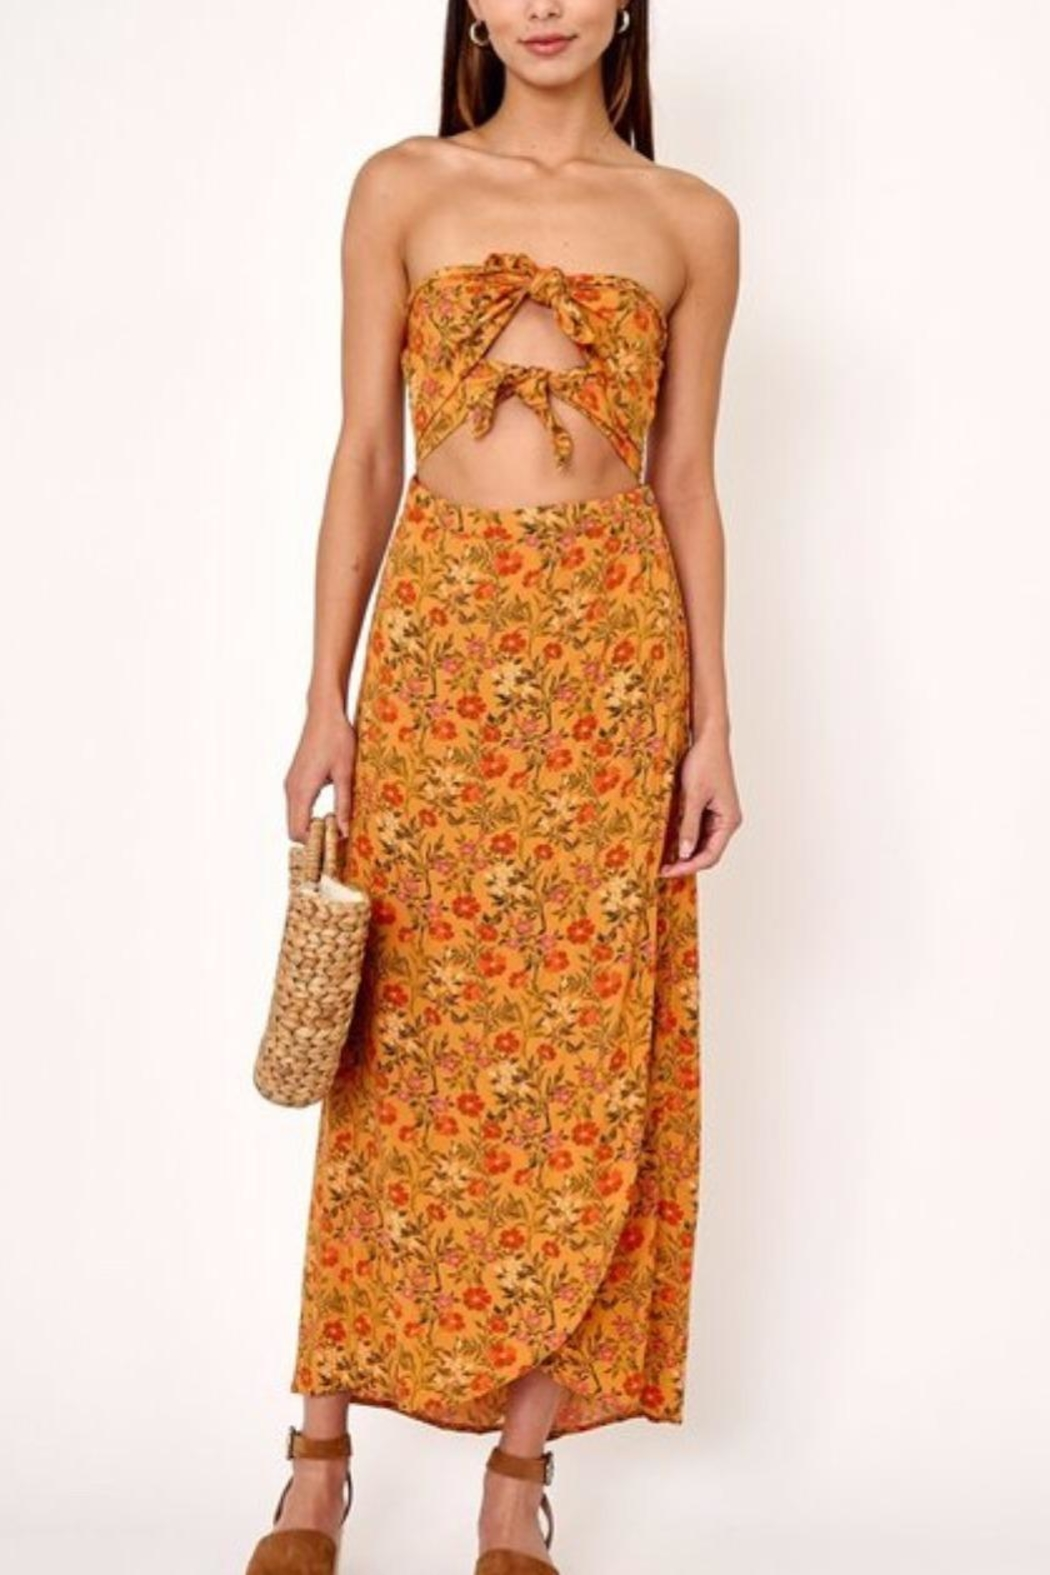 6485ce083c5e7f Olivaceous Cutout Floral Dress from Brooklyn by Glam Expressway ...